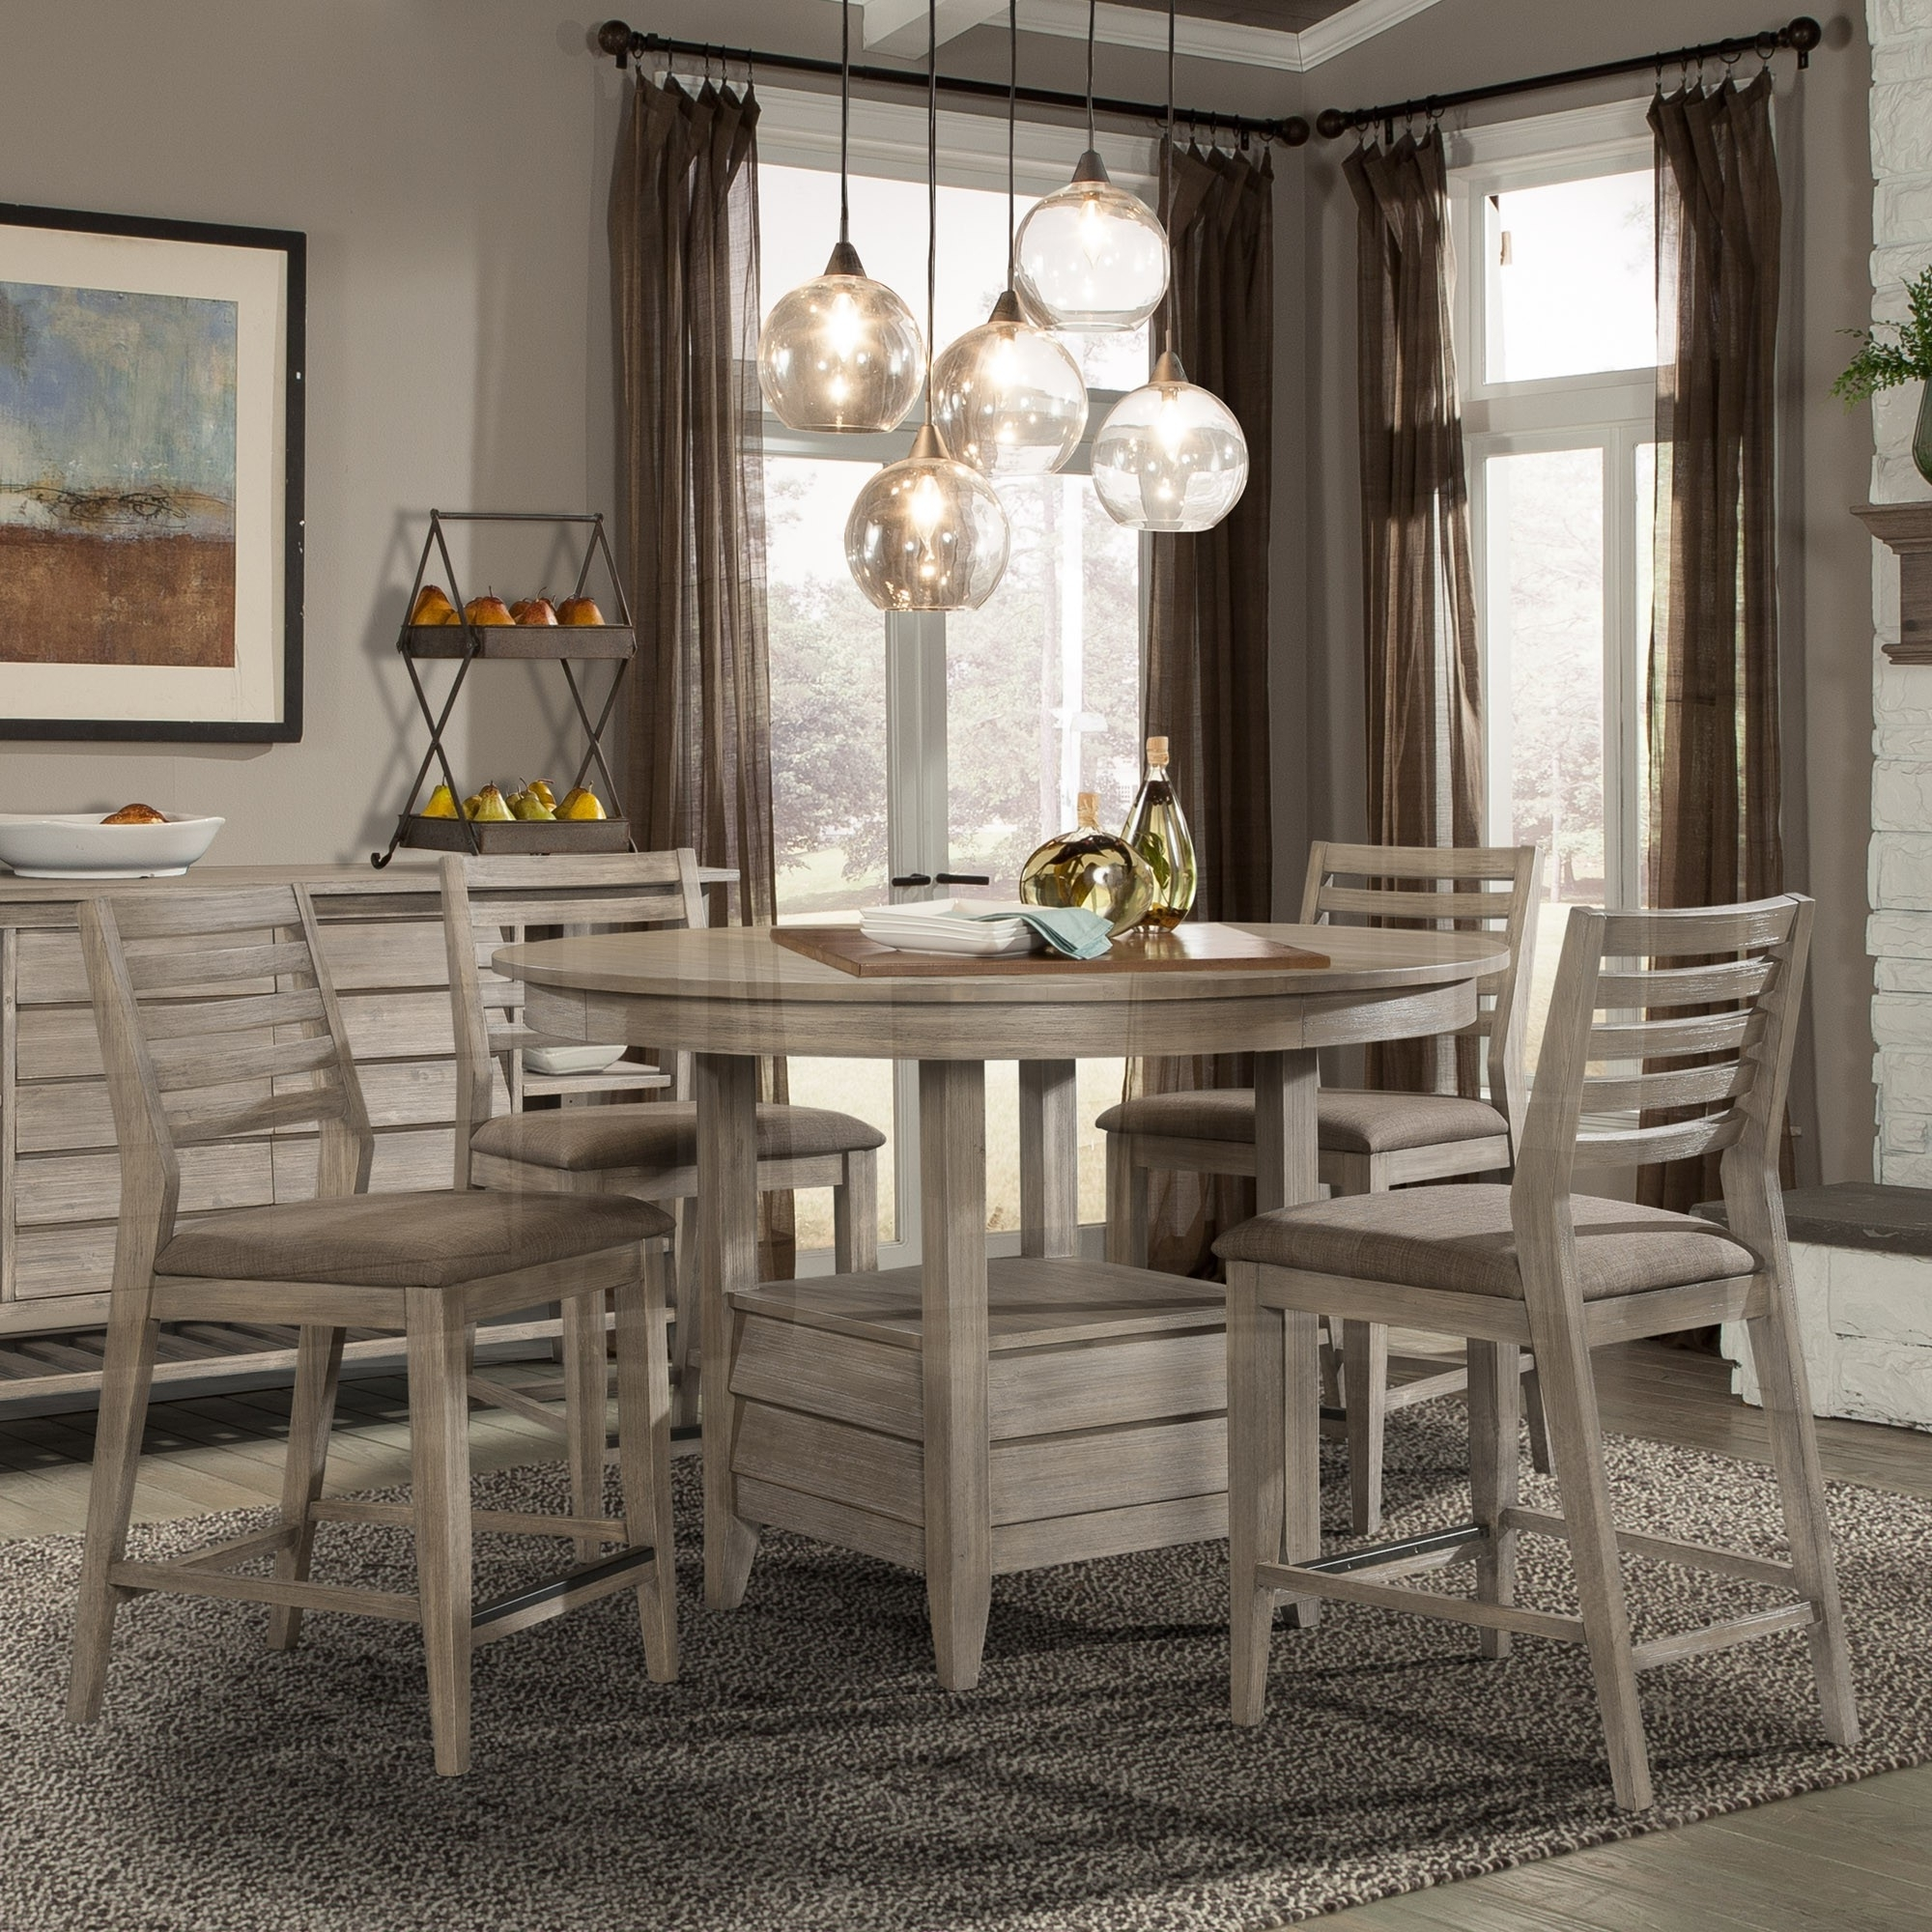 Corliss Landing Wood Counter Height Table In Weathered Driftwood Inside Preferred Dining Tables With Attached Stools (View 16 of 25)